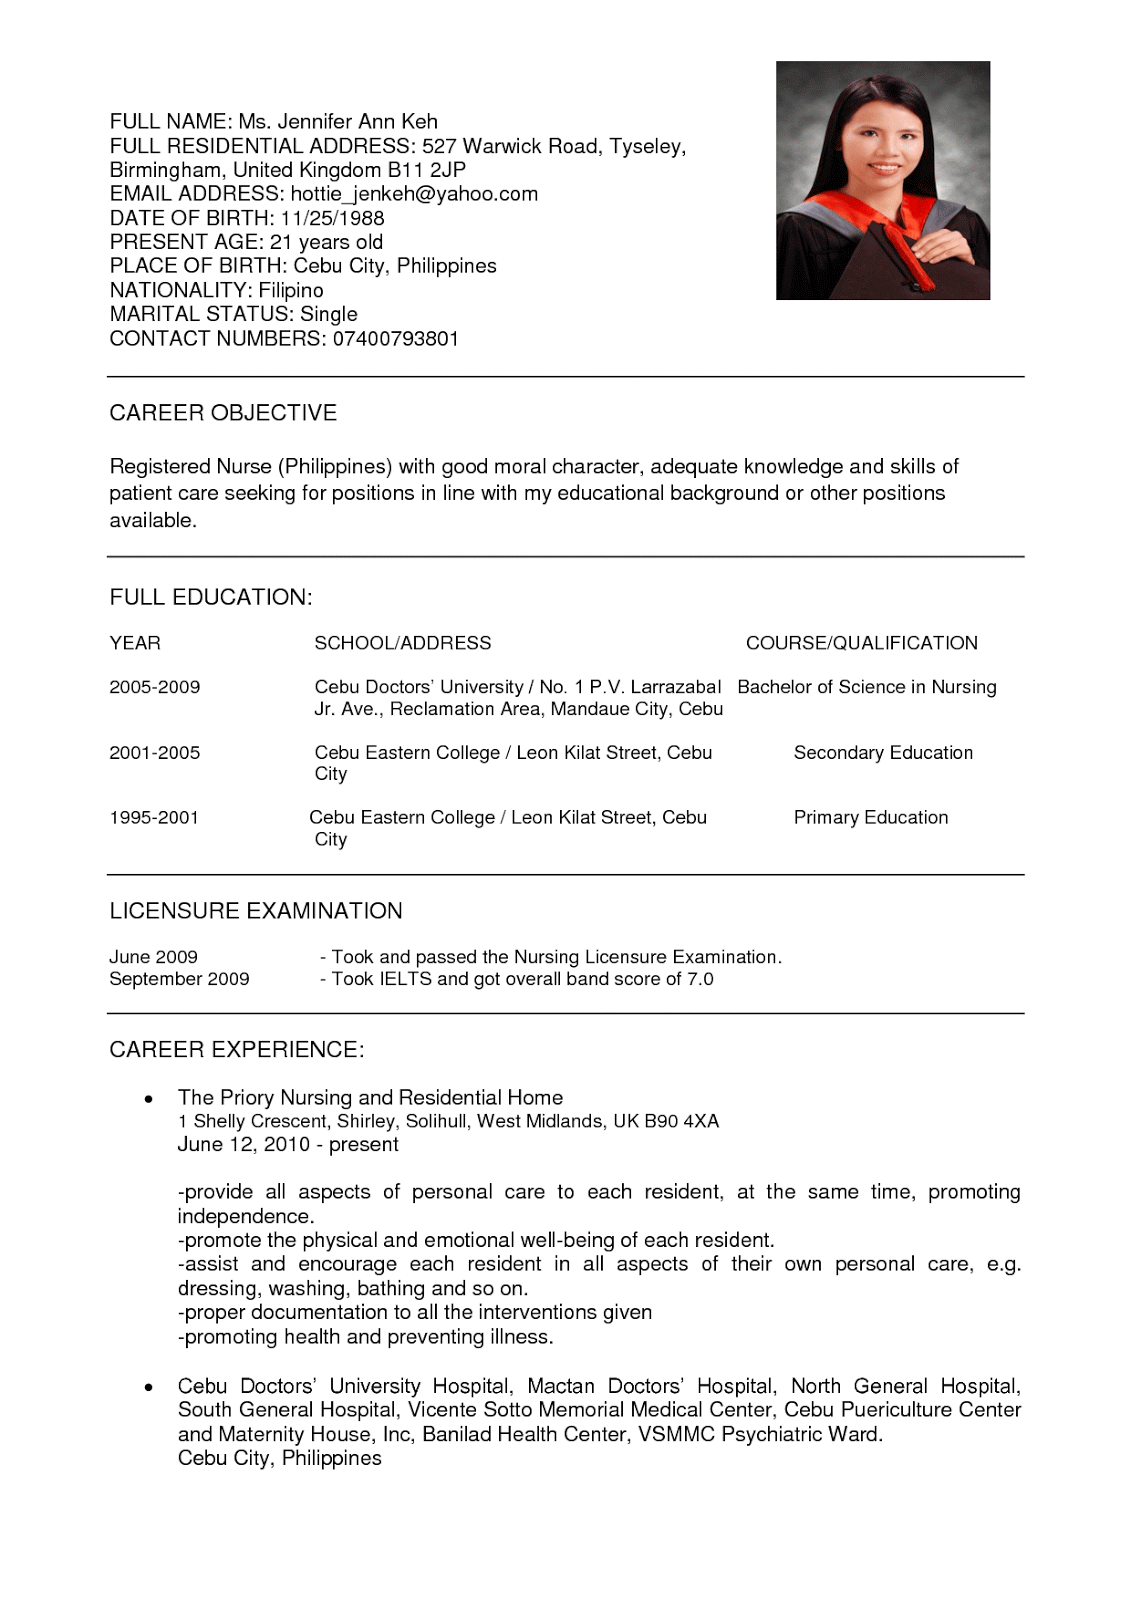 cv format for nurses - Nurse Resume Sample